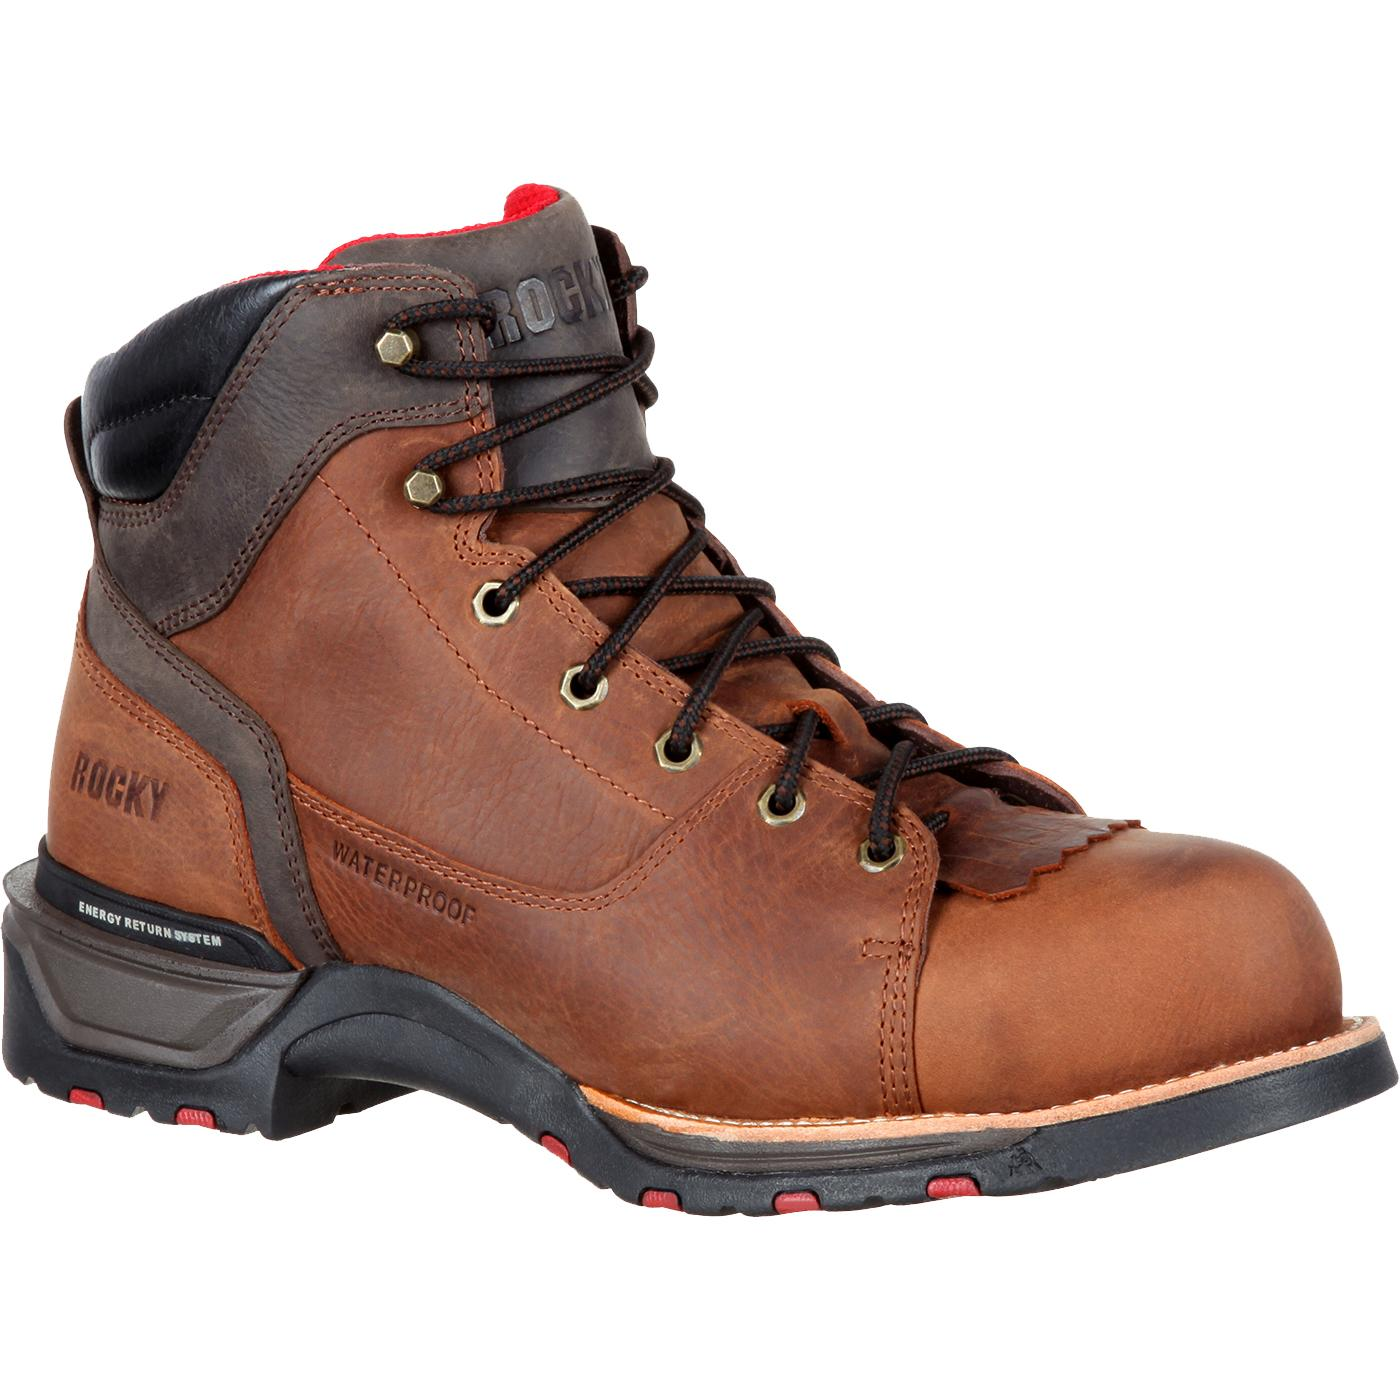 796298e8aab Rocky Technoram Composite Toe Waterproof Work Boot